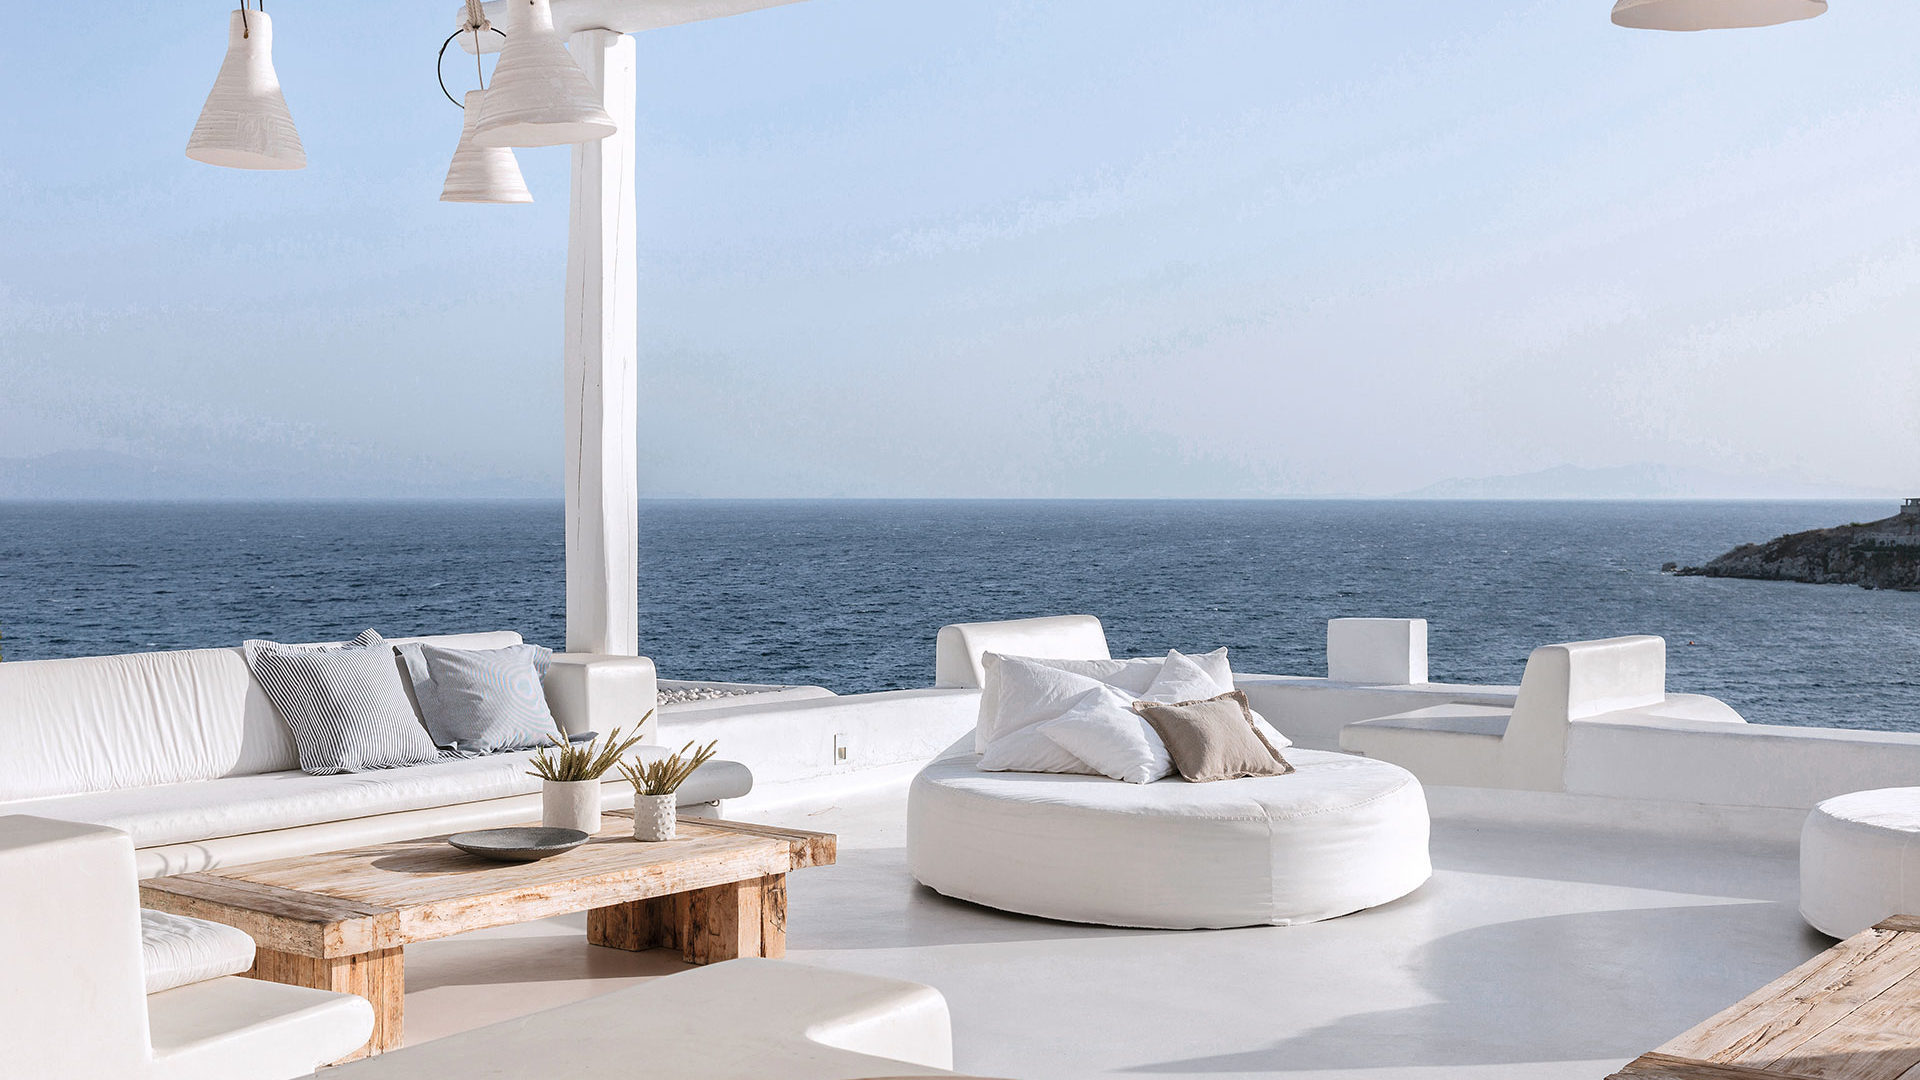 Mykonos_Blu-13-Royal-Blu-Mansion-outdoor-living-area-with-sea-view_72dpi